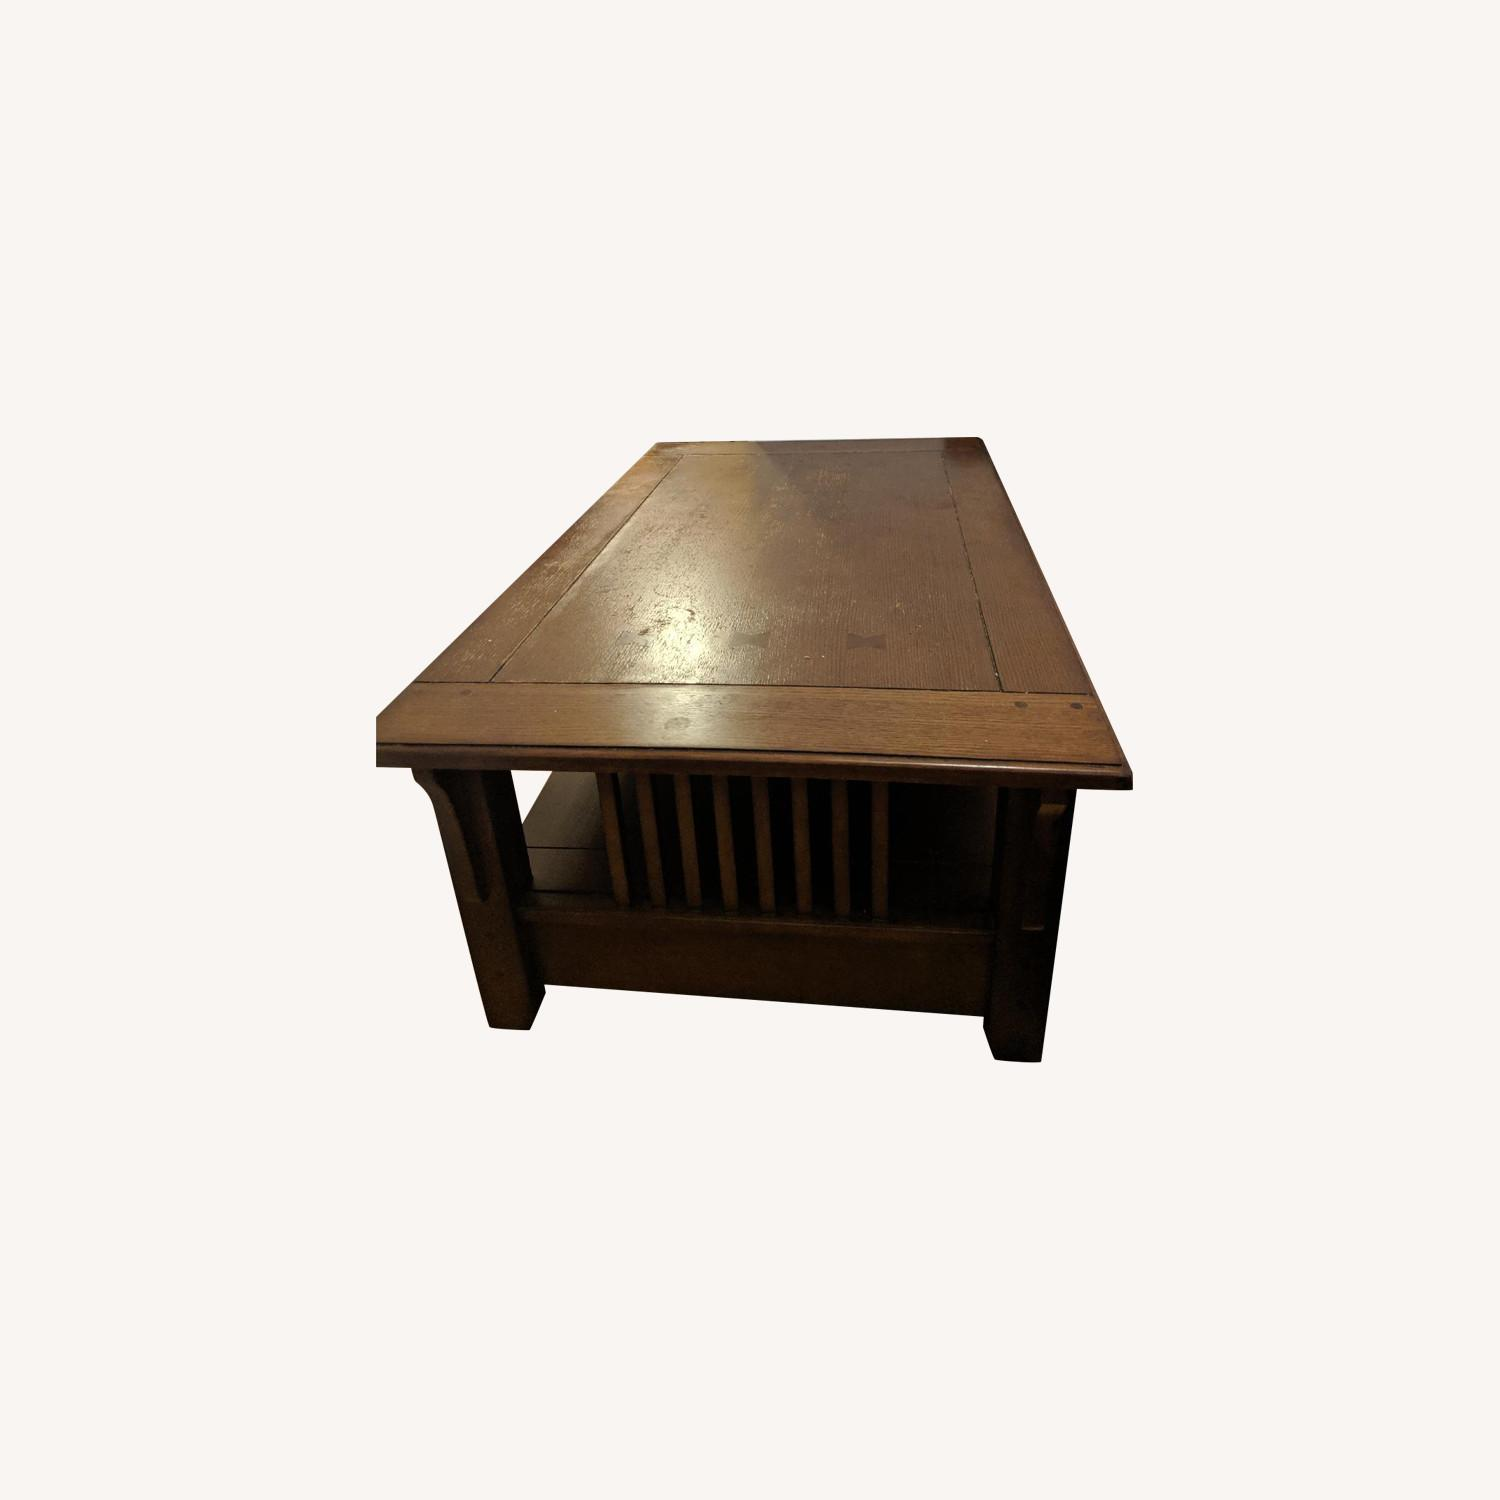 Vintage Wooden Lift-Top Coffee Table - image-0